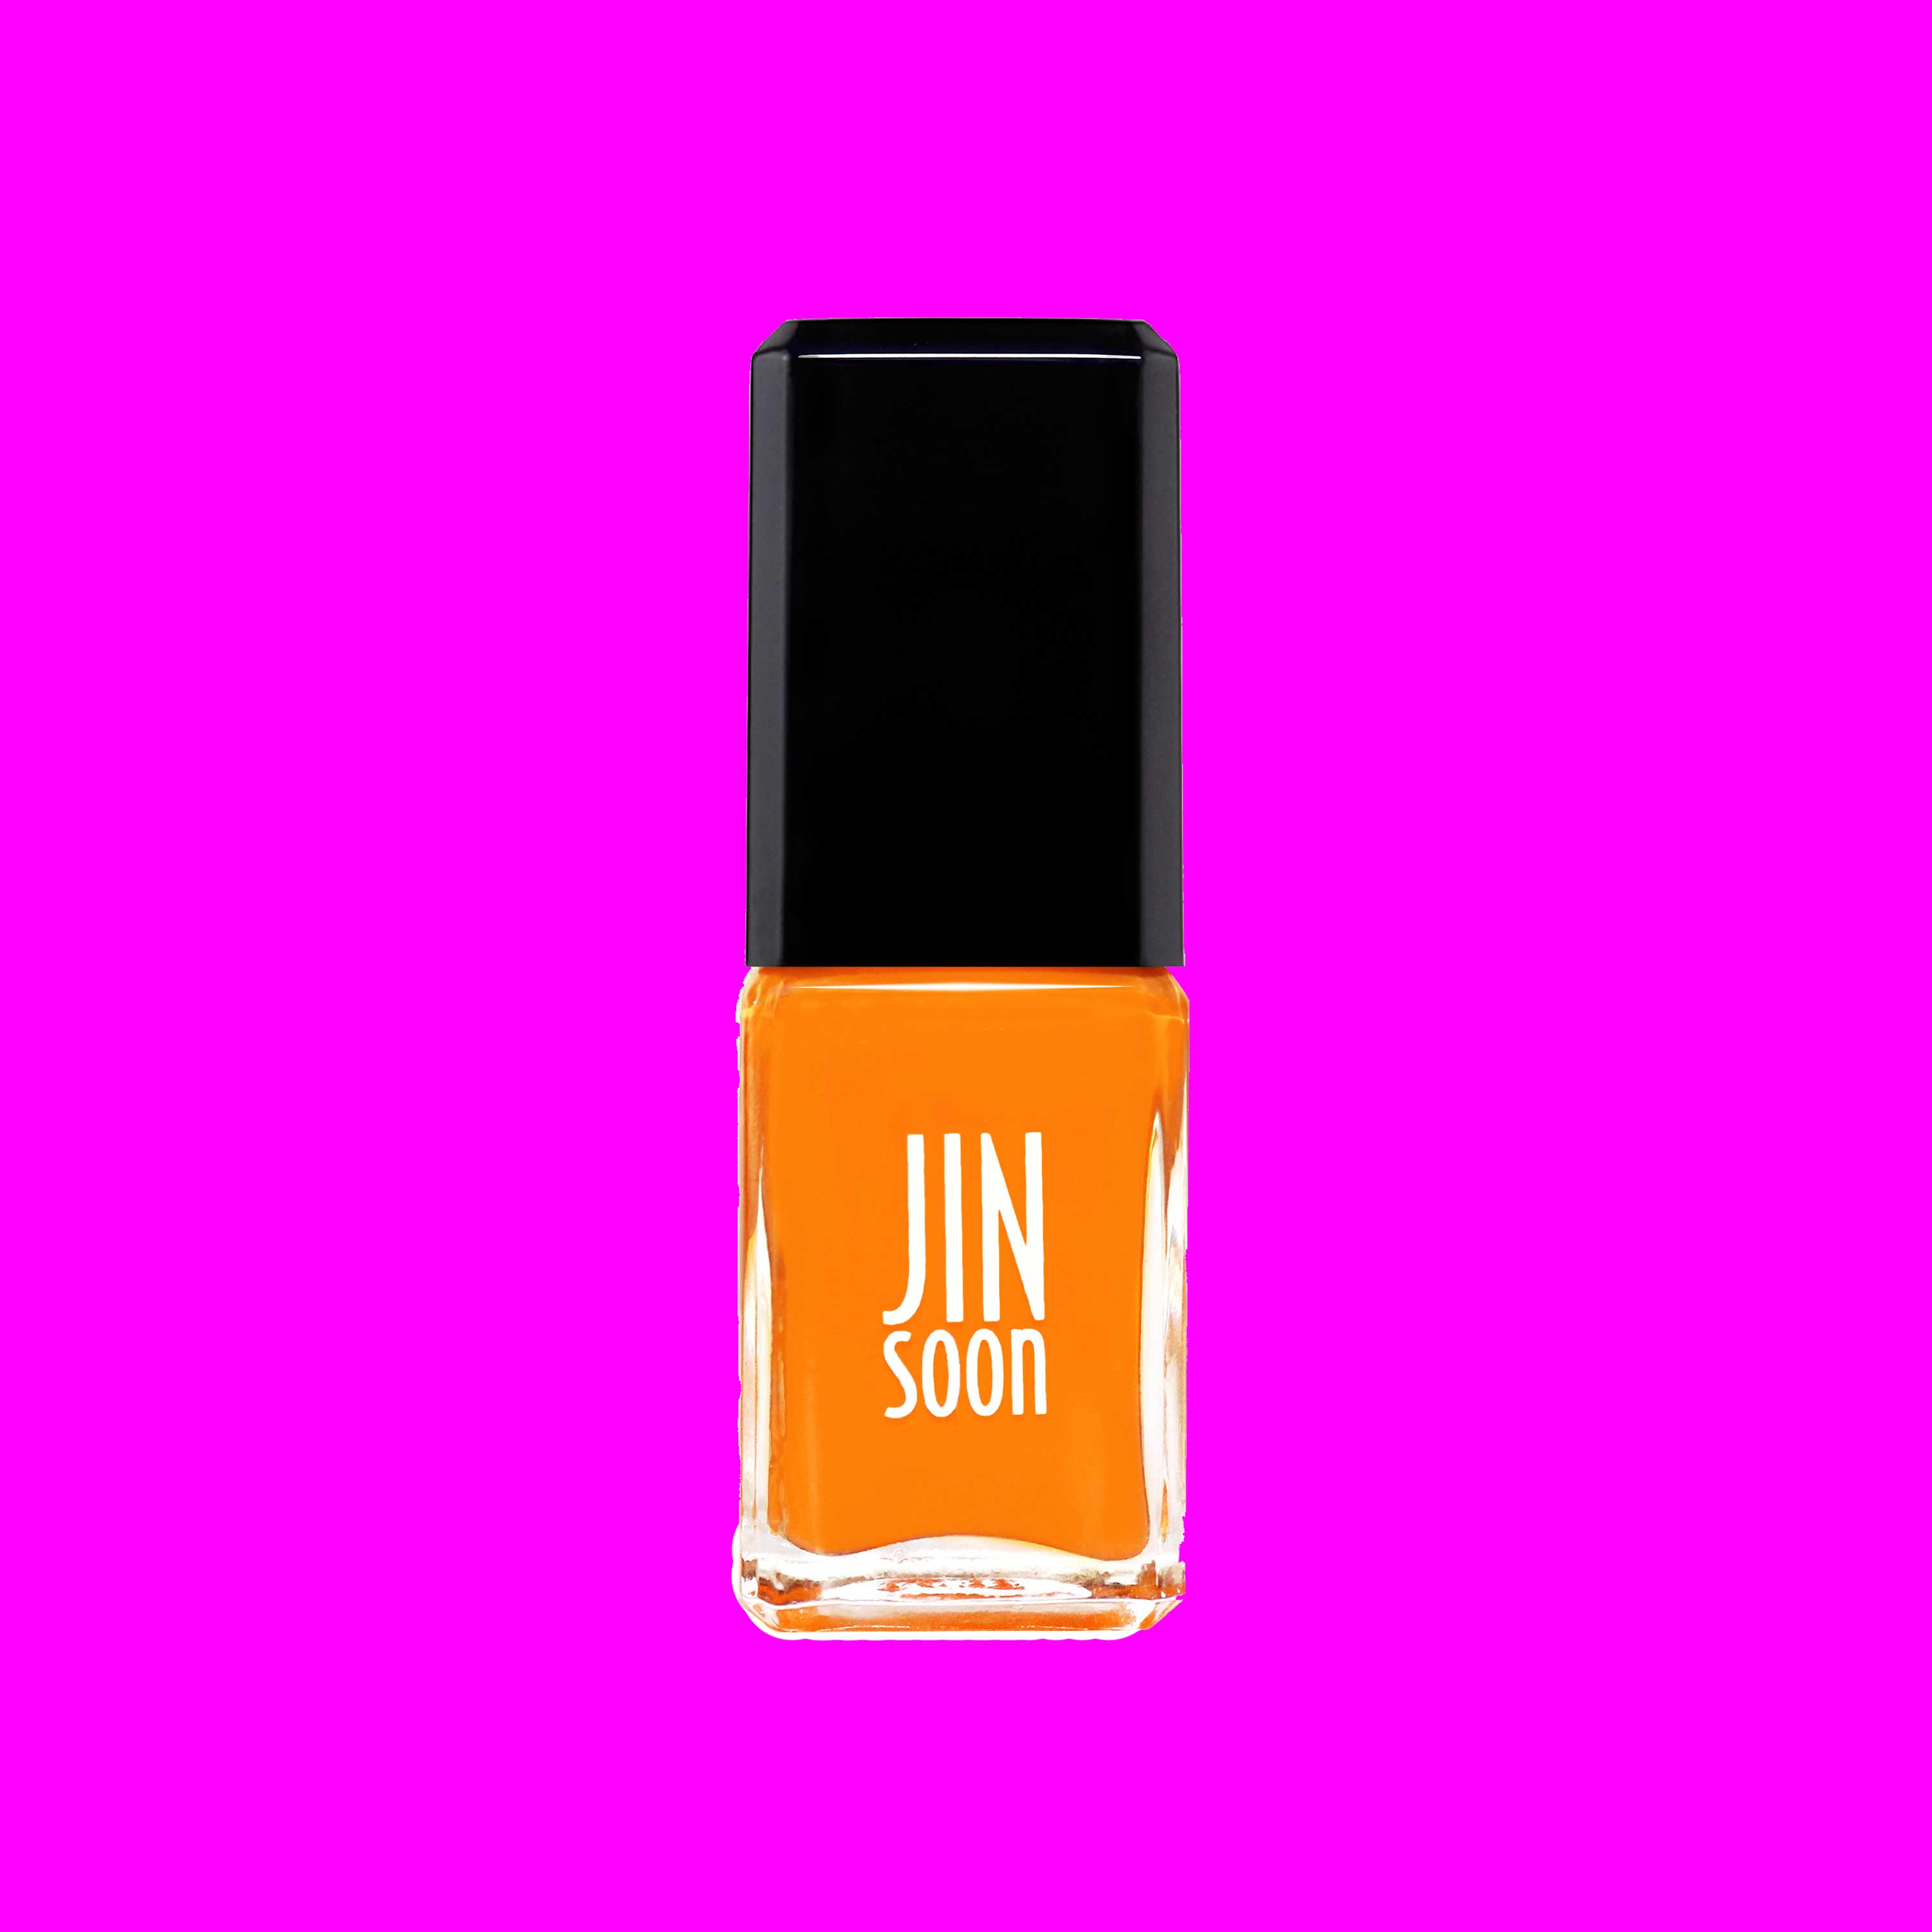 Hottest Nail Polish Colors Totally Changes How Your Hands Look 4